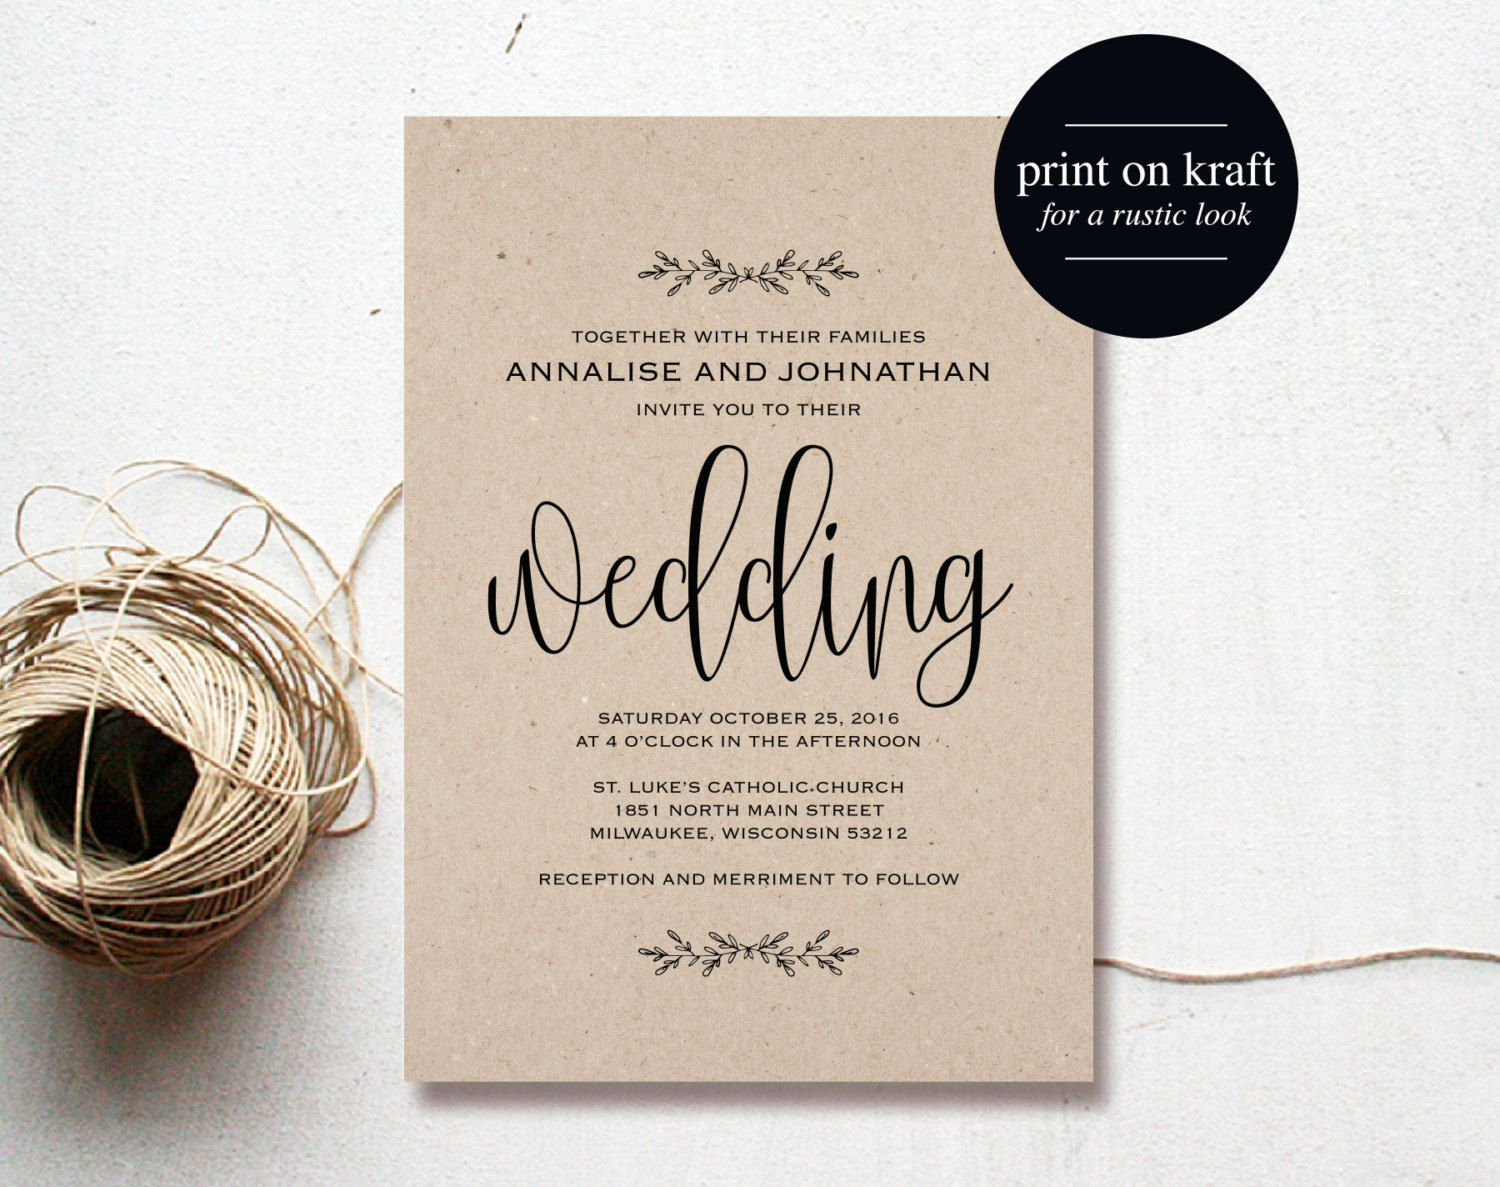 purchase this listing to receive 5 high resolution wedding Wedding Invitations On The High Street purchase this listing to receive 5 high resolution wedding invitation template downloads for you to edit wedding invitations on the high street